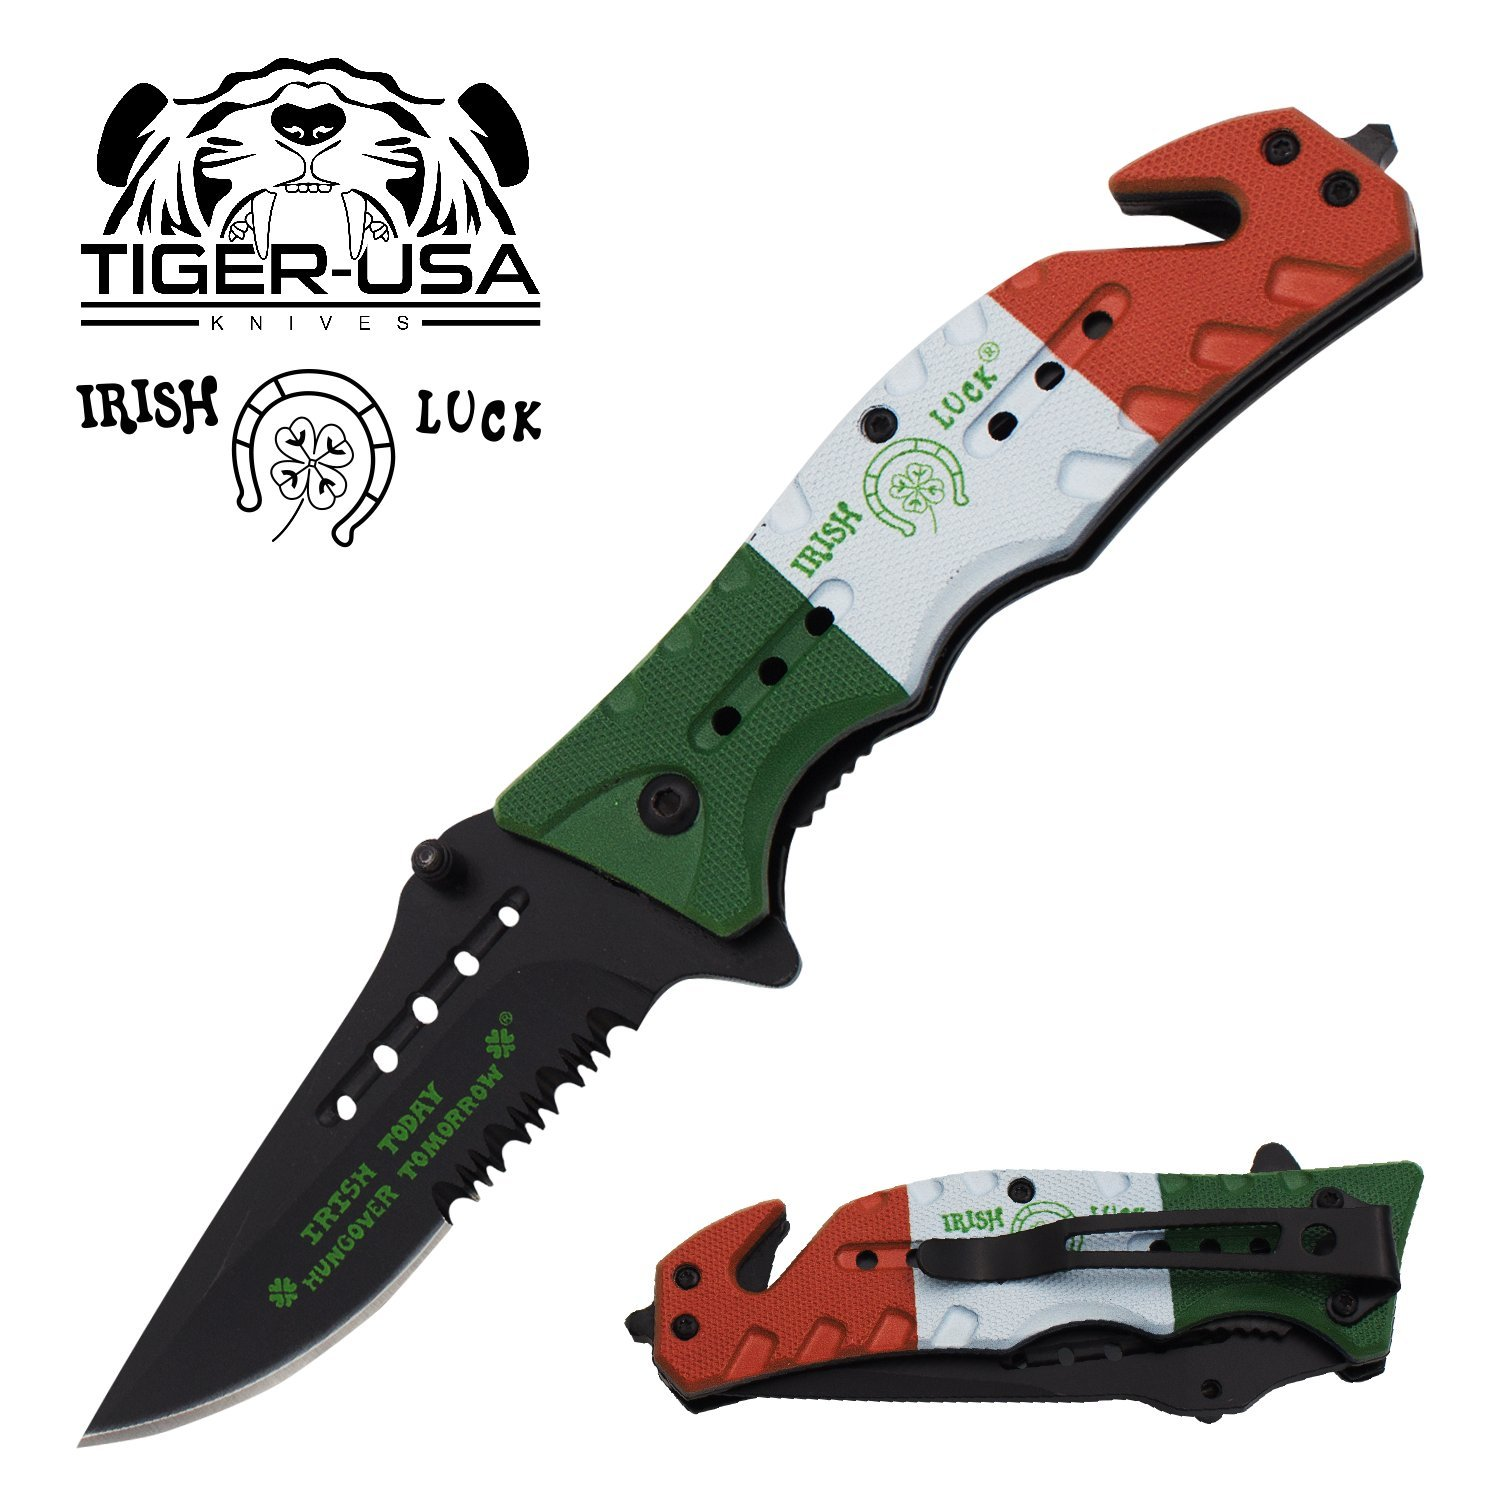 Irish Luck Four Leaf Clover Pocket Knife with lucky horseshoe – 8 inch Irish Flag Folding Knife Made by Tiger-USA